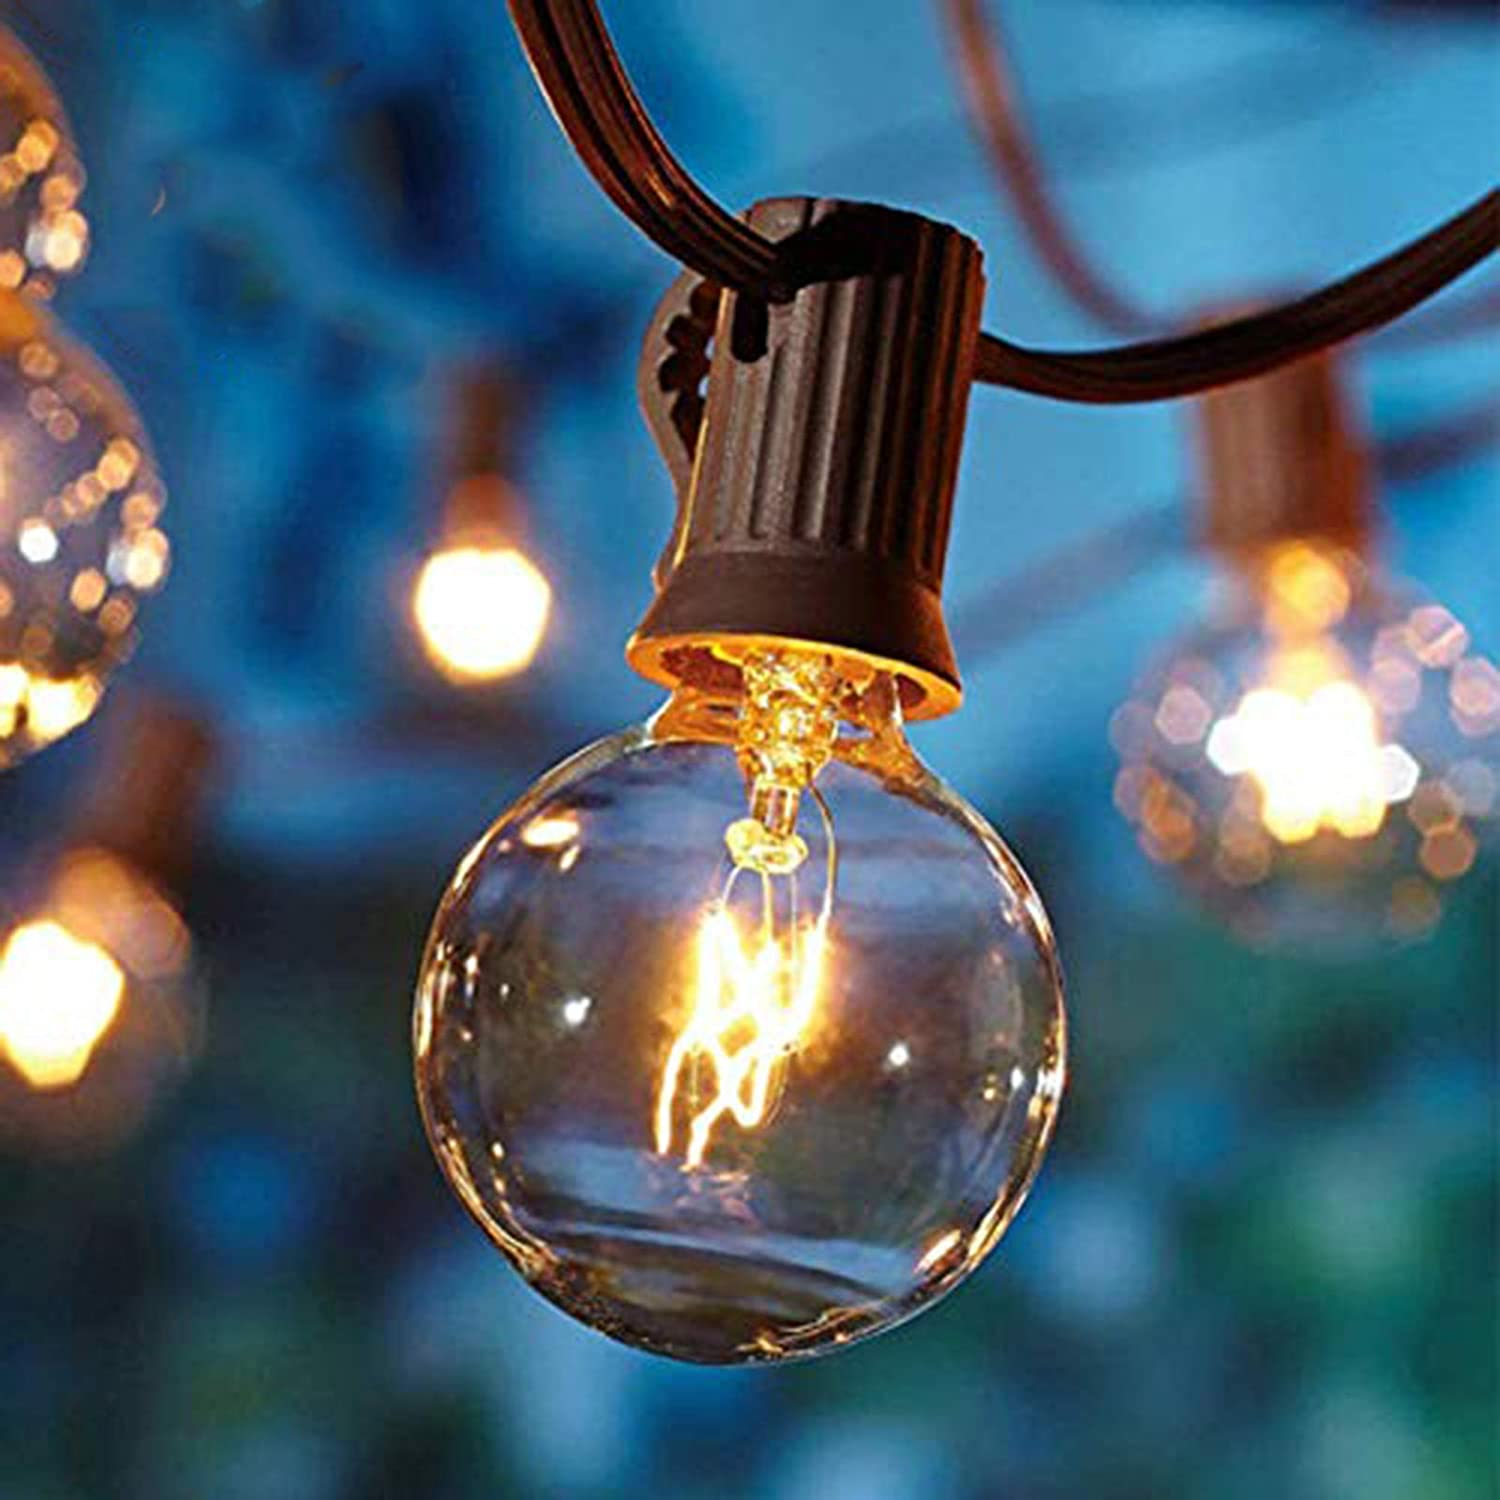 Goothy Outdoor String Lights, 25FT Hanging Patio Lights String with 27 G40 Clear Globe Bulbs (2 Spare), Connectable Globe String Lights for Indoor Outdoor Garden Commercial Decor, C7/E12 Base - Brown